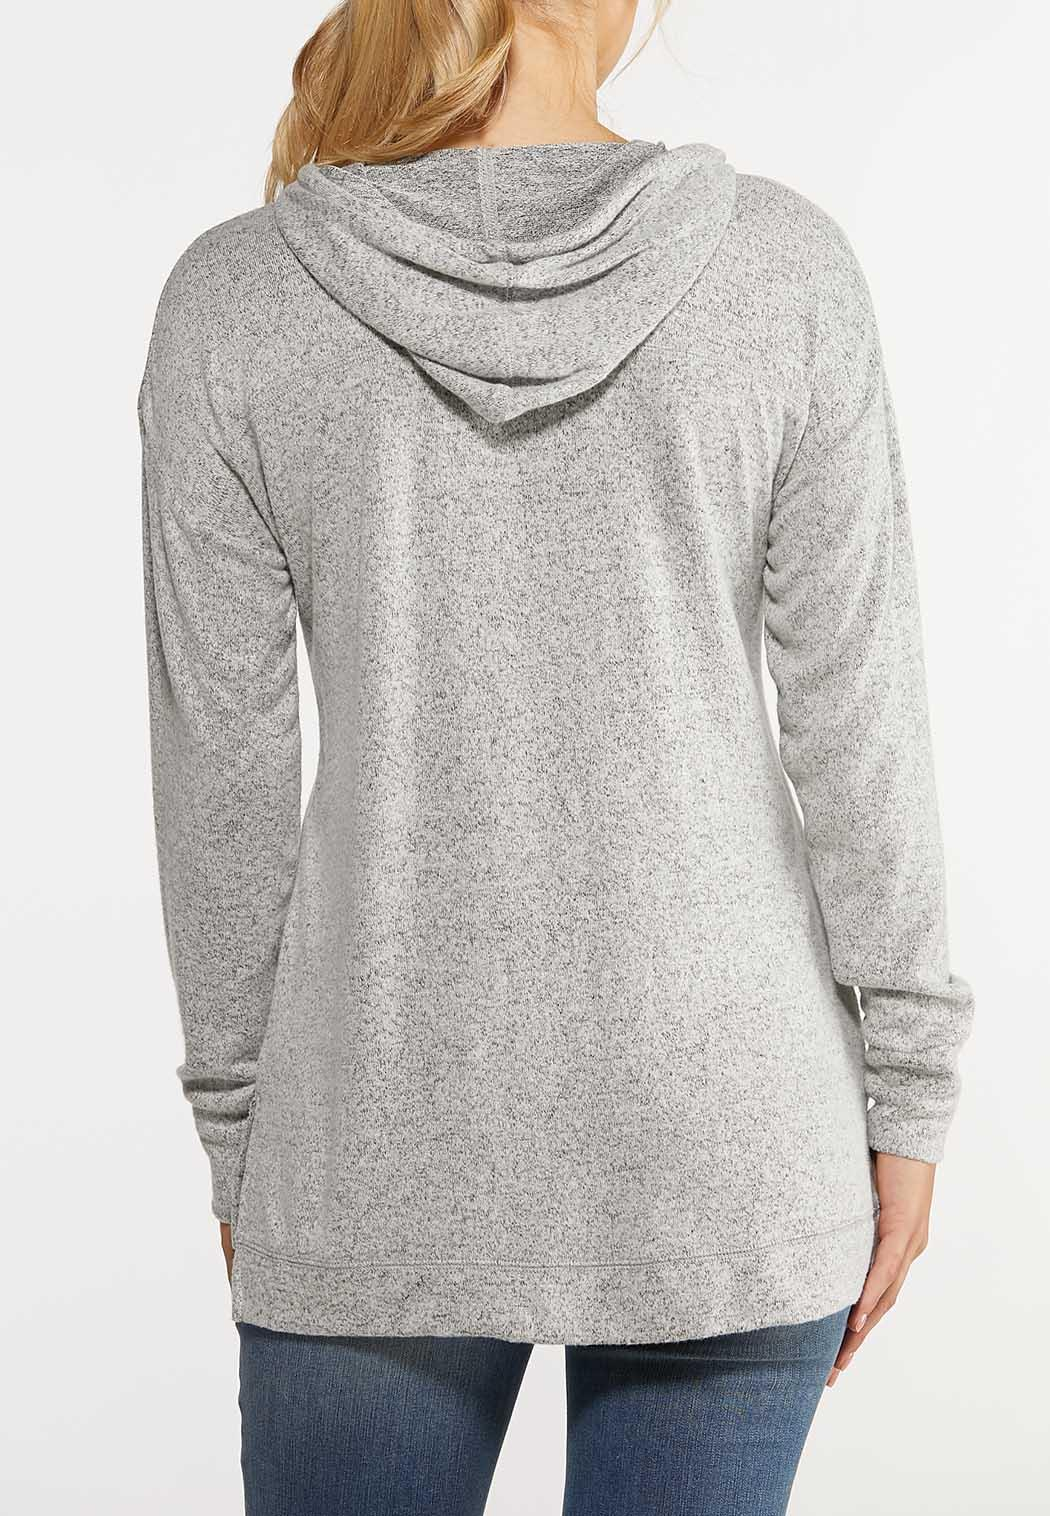 Plus Size Sequin Love Hooded Top (Item #44023138)